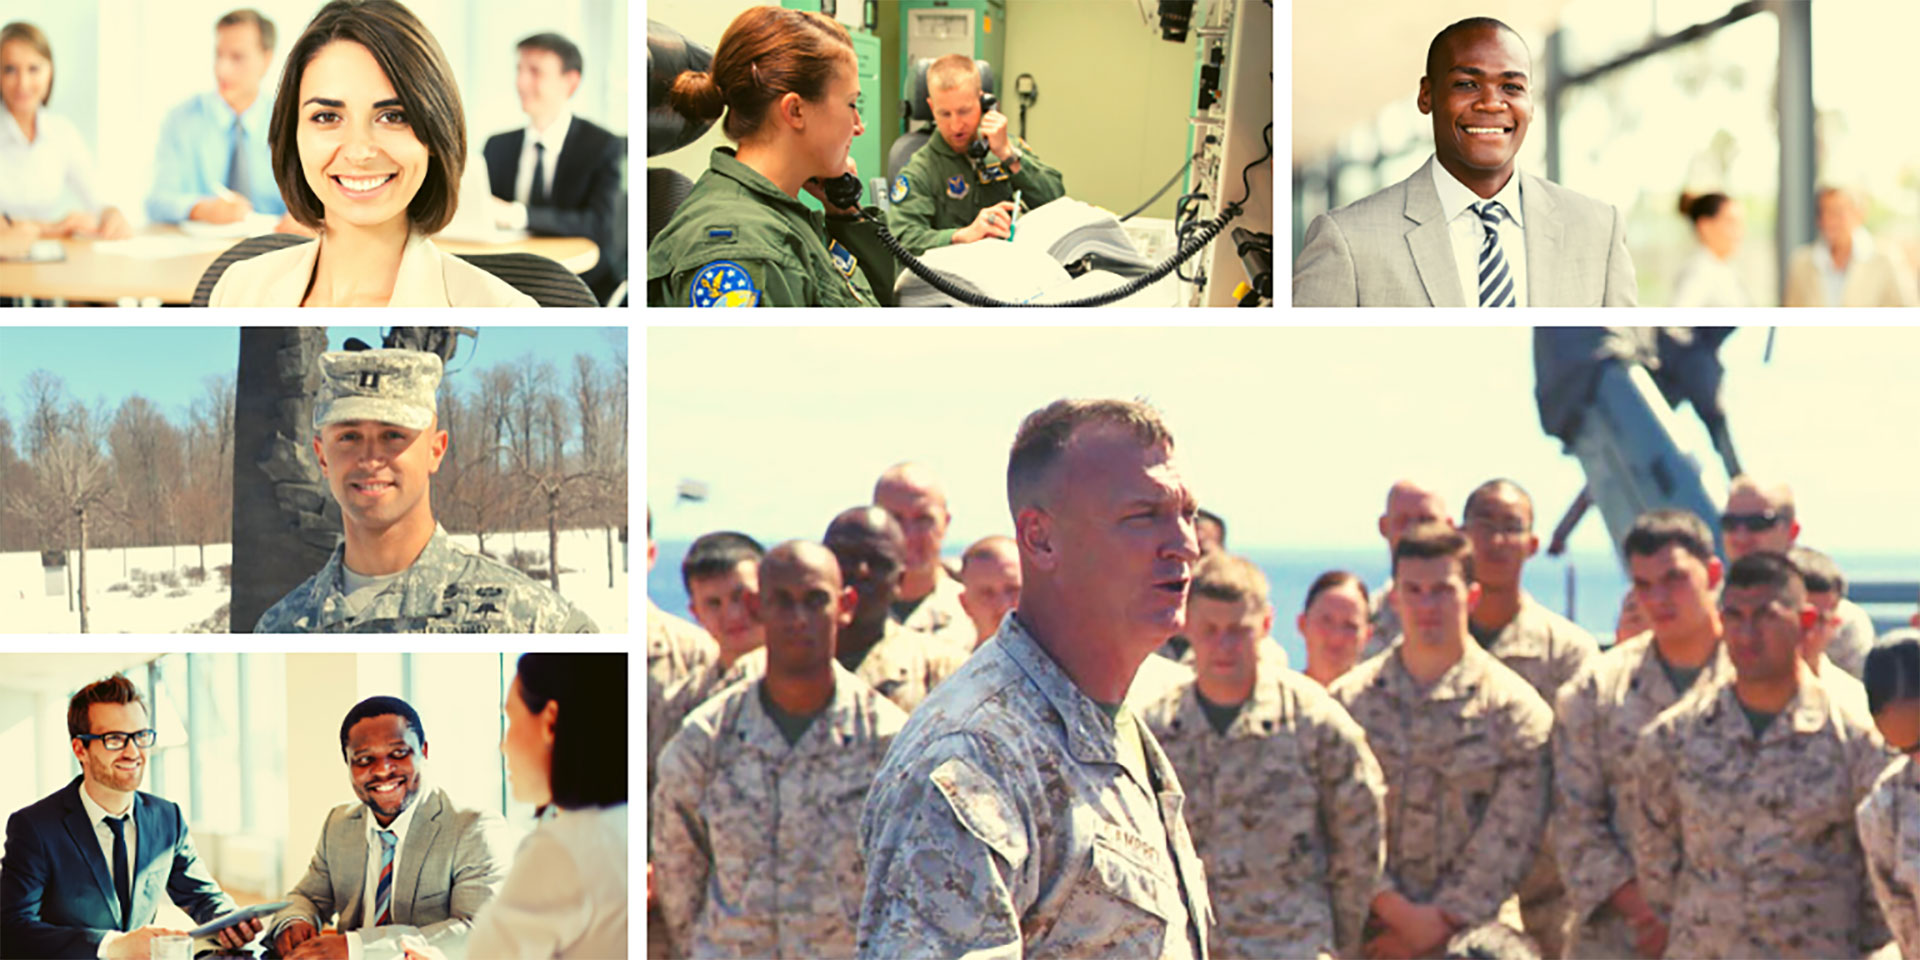 Post-Military Careers for Transitioning and Former Military Officers